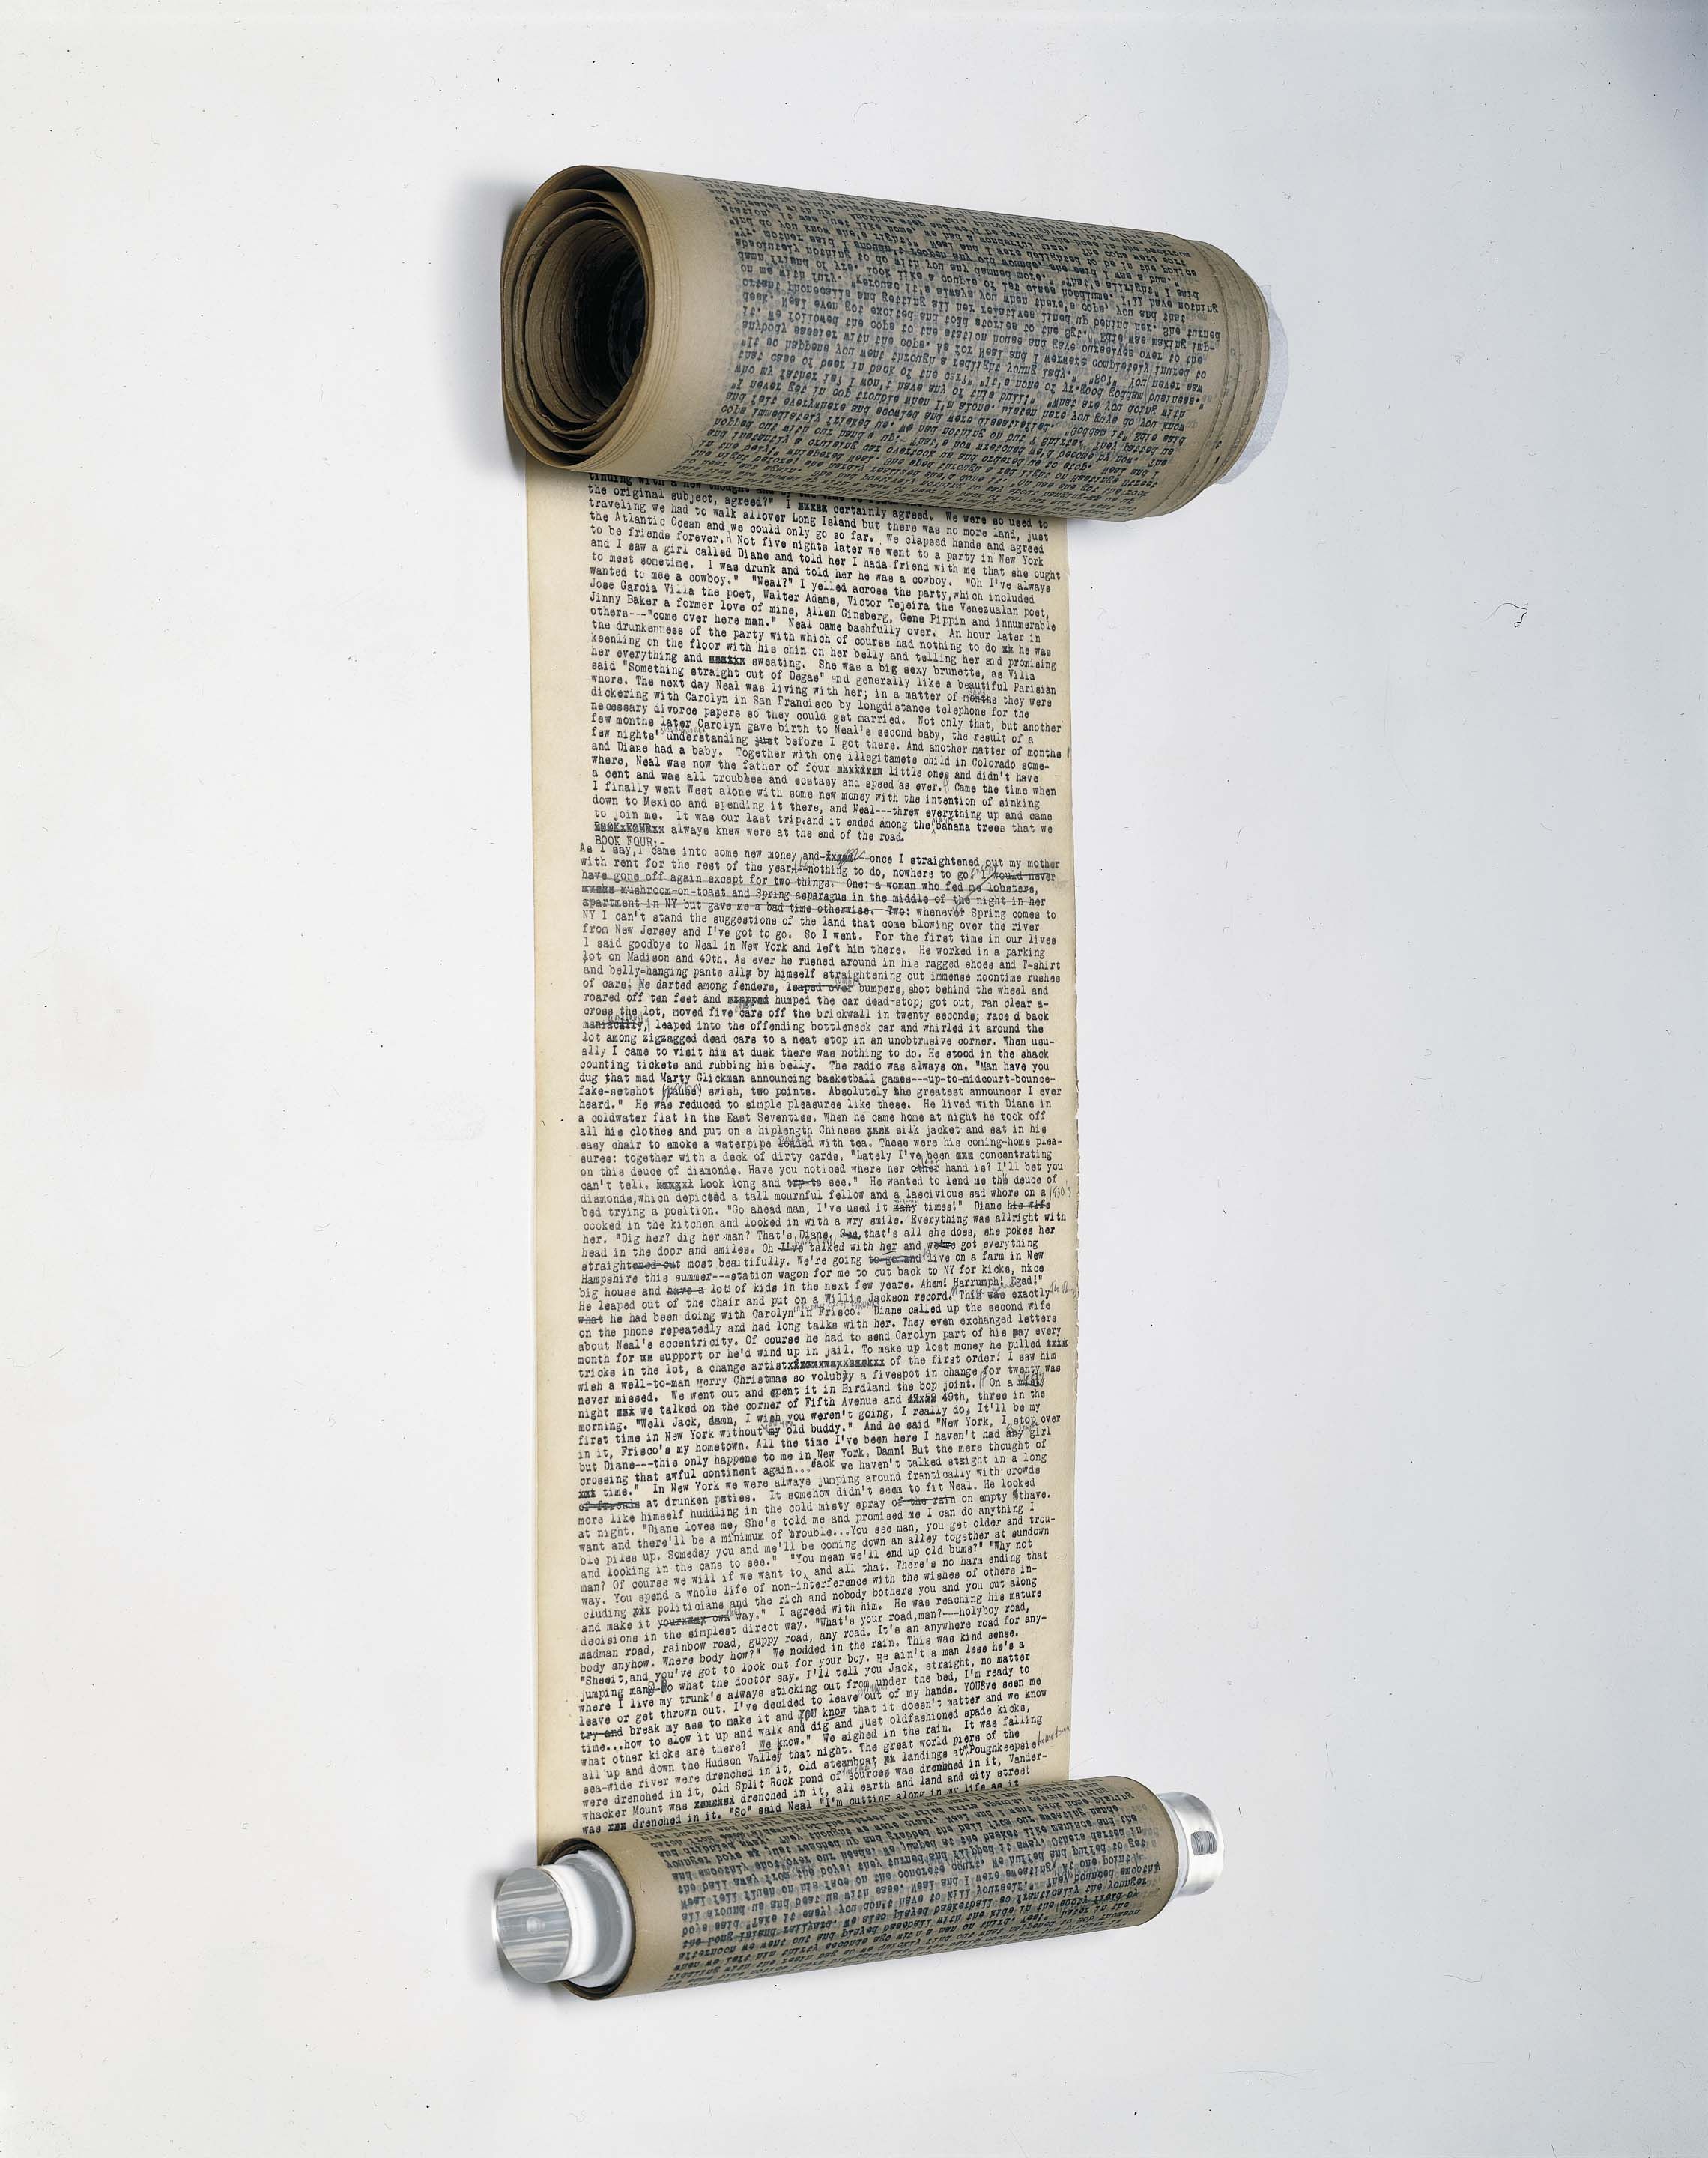 The original On the Road manuscript: A scroll with small typewriter text